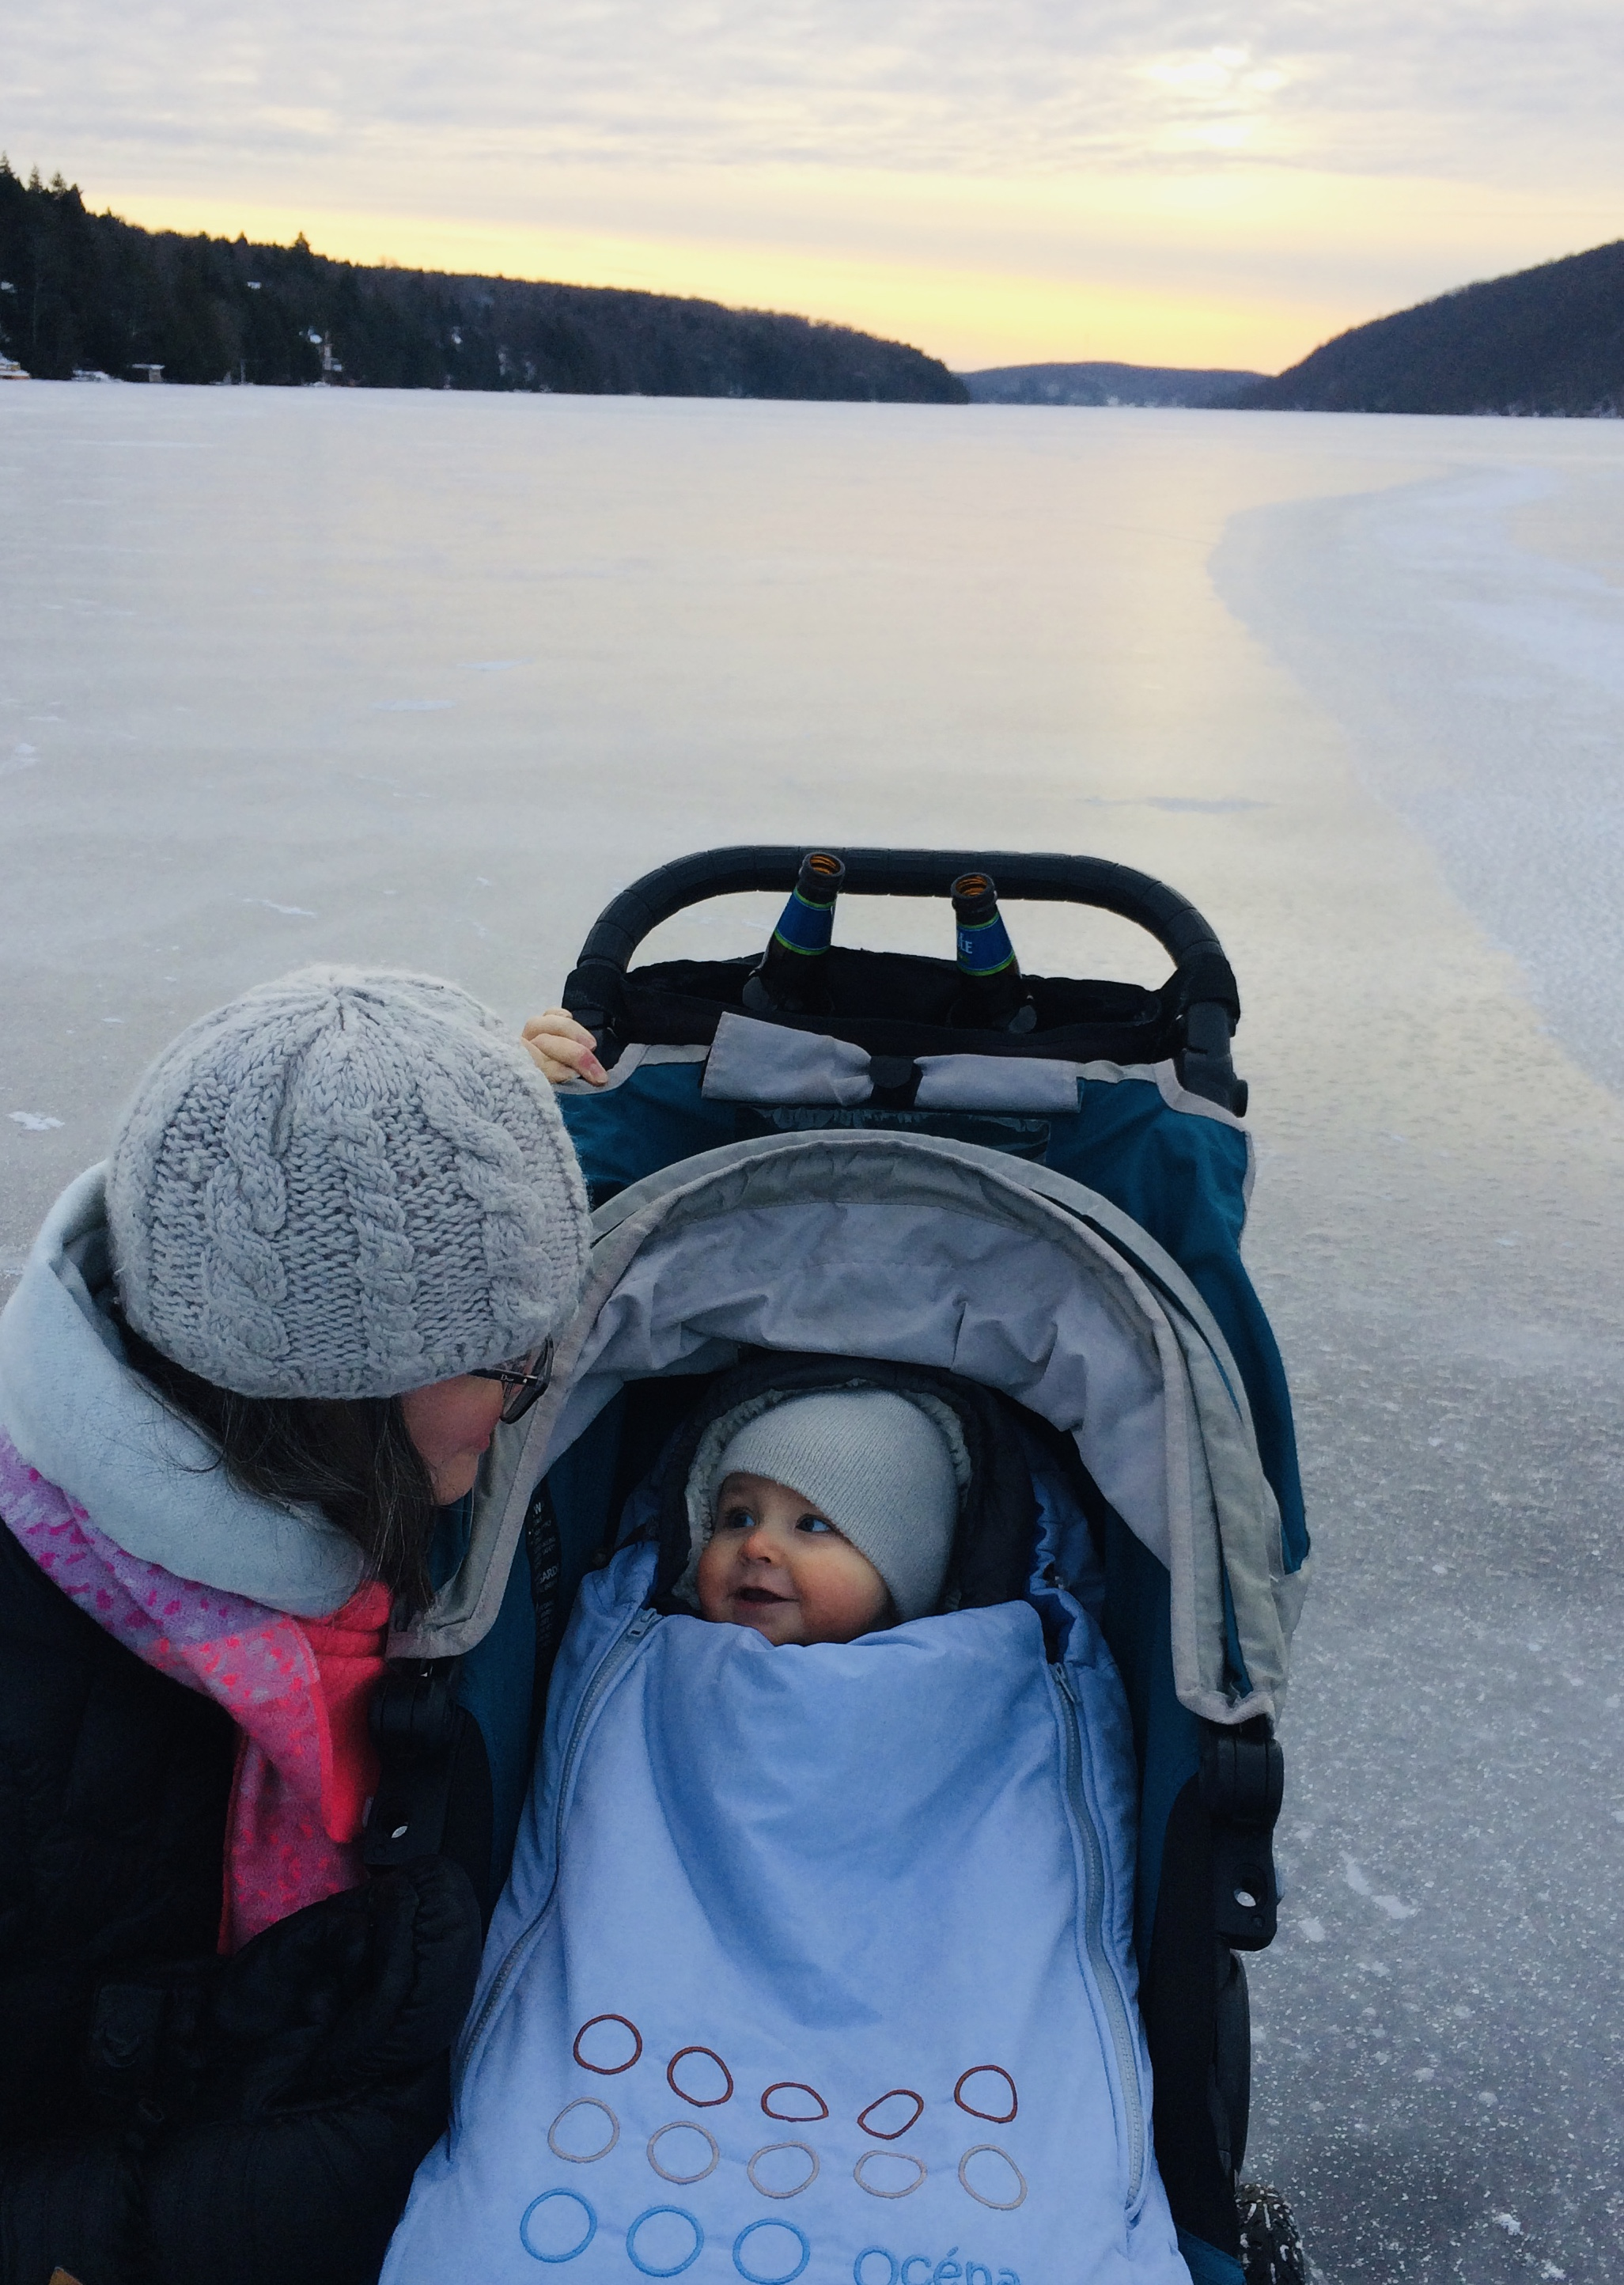 a new year's eve stroll on the lake by our rental cottage. though the stay didn't go as expected, we had a really sweet afternoon en famille!